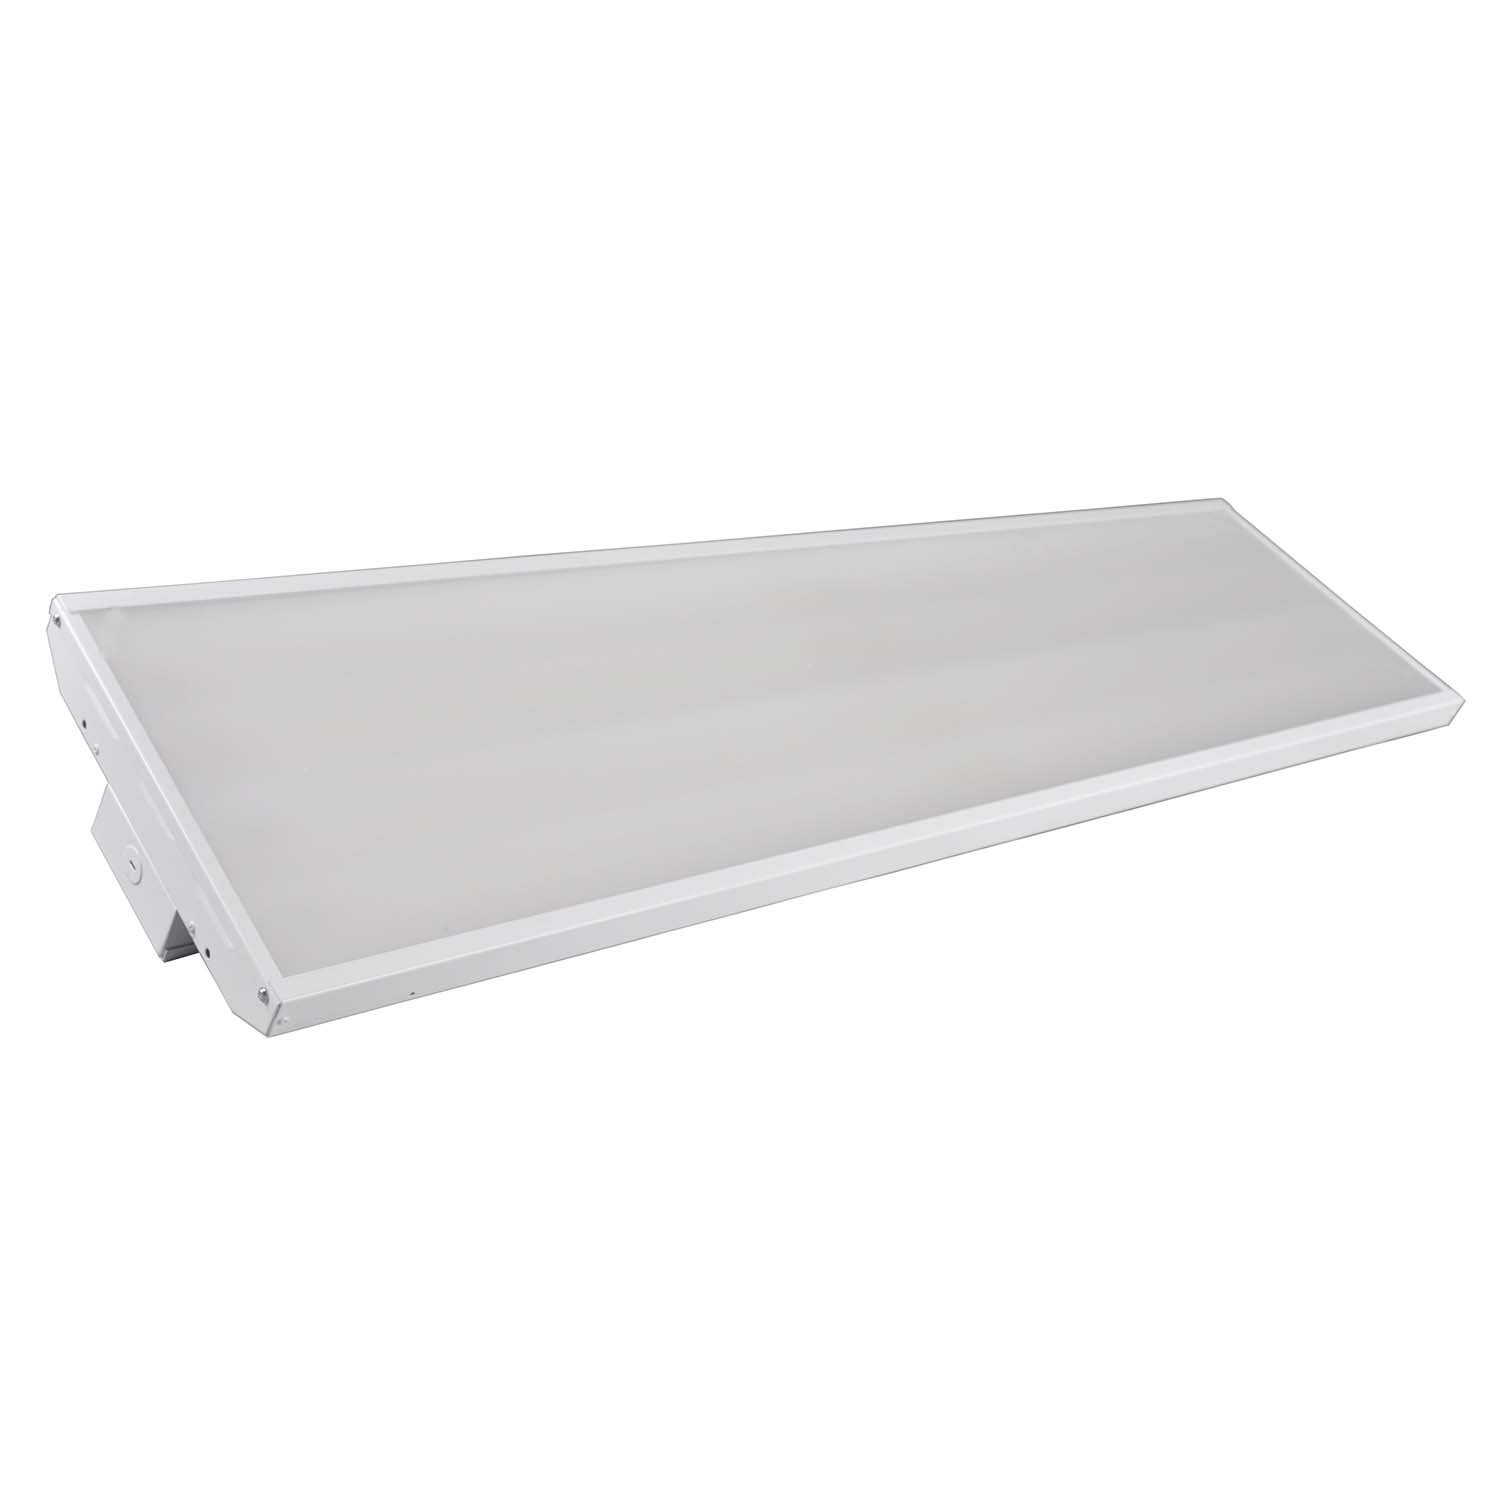 LHB3/221/850/UNV/LED2 99651 LINEAR LED HIGH BAY 120-277V, 221W, 5000K, 0-10V DIMMING, SERIES II